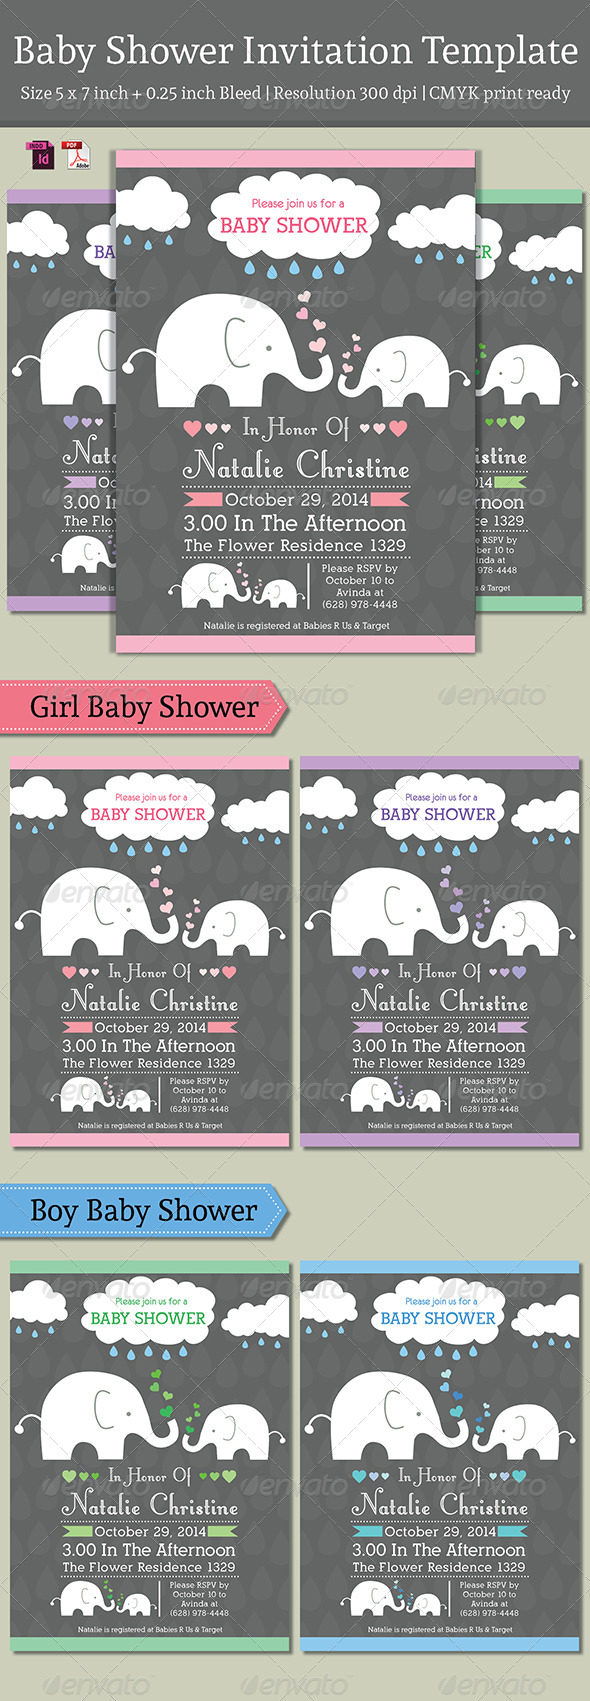 GraphicRiver Baby Shower Template Vol 3 7718300